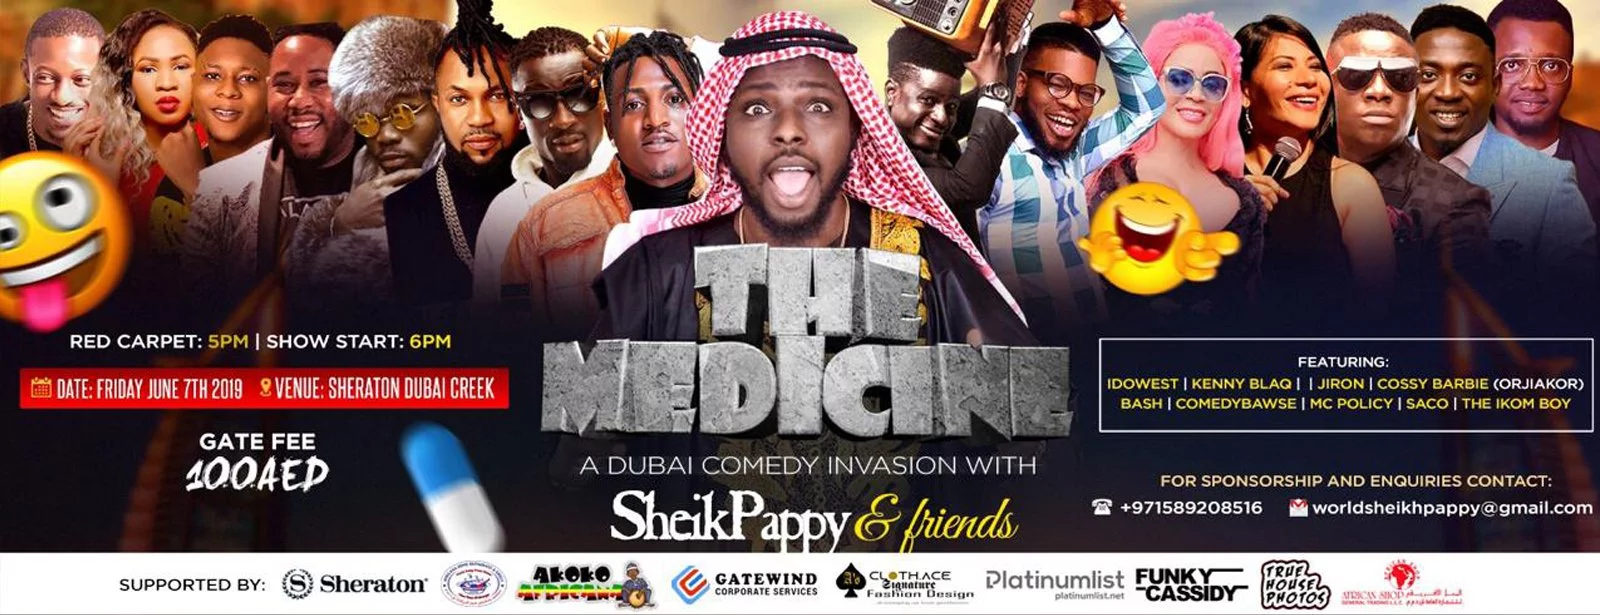 The Medicine: Sheik Pappy and Friends Dubai